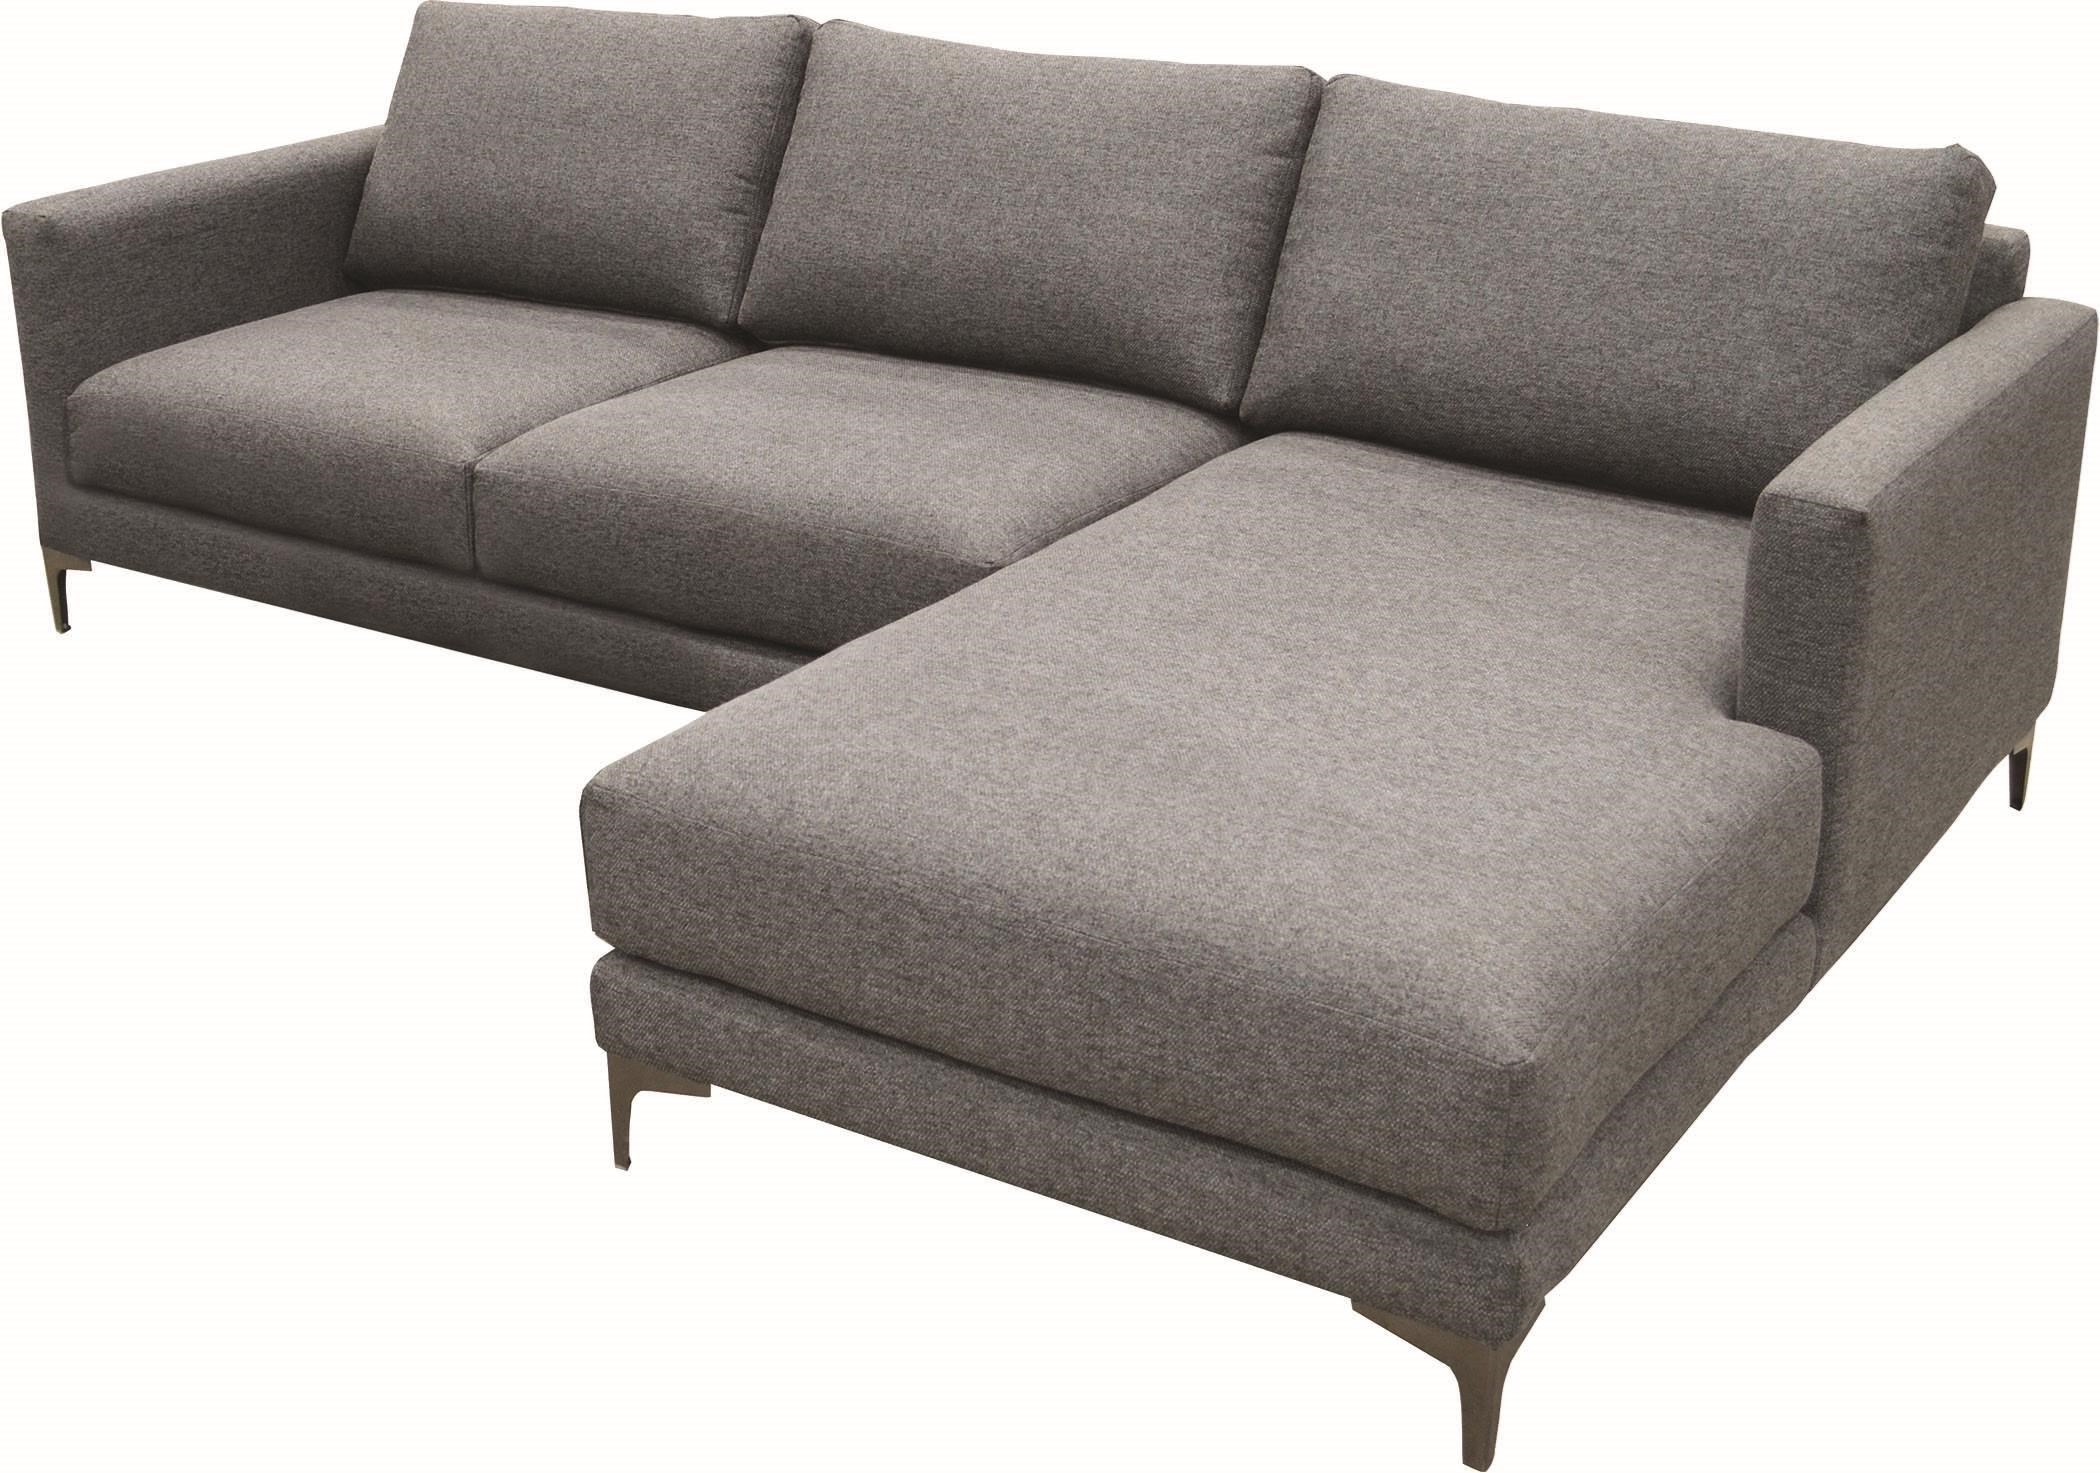 Alyssa 2 Piece Sectional by Urban Roads at Darvin Furniture